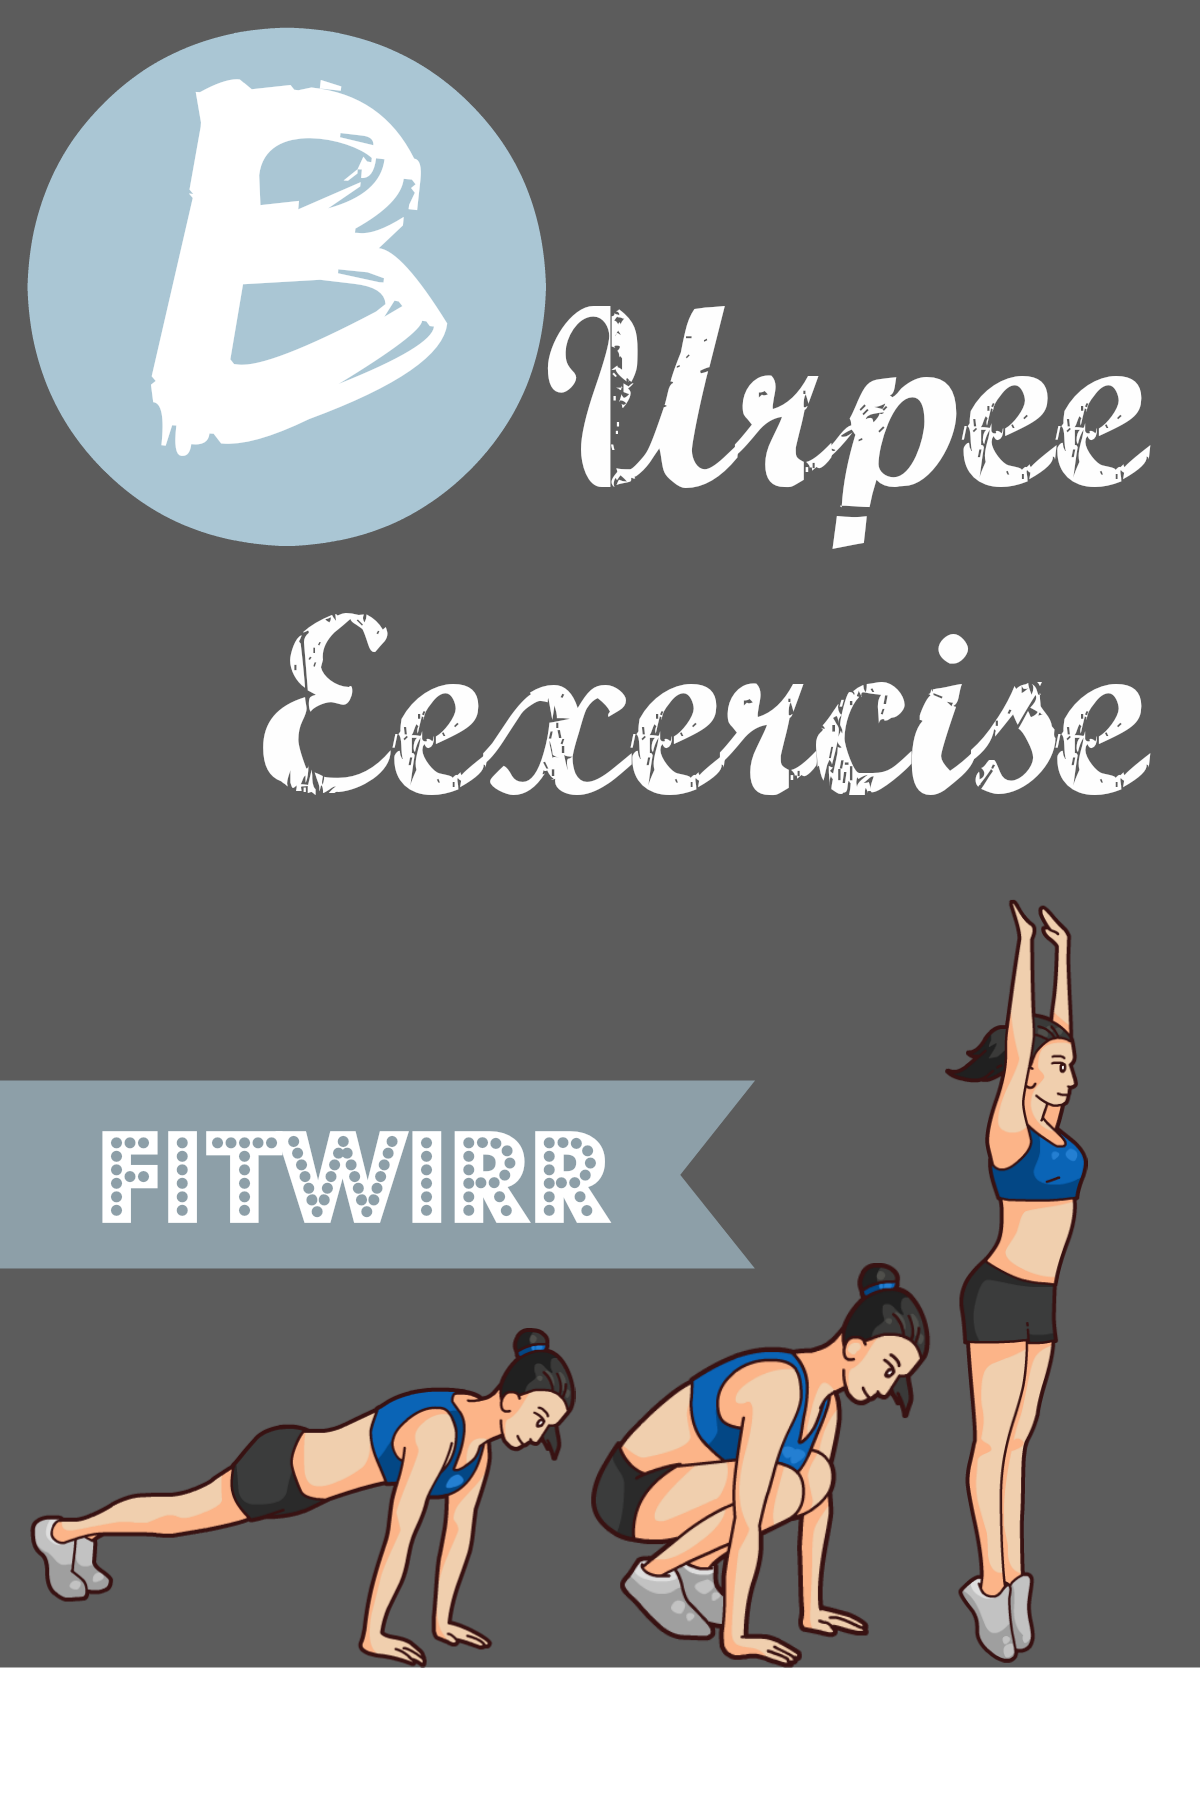 What is Burpee?